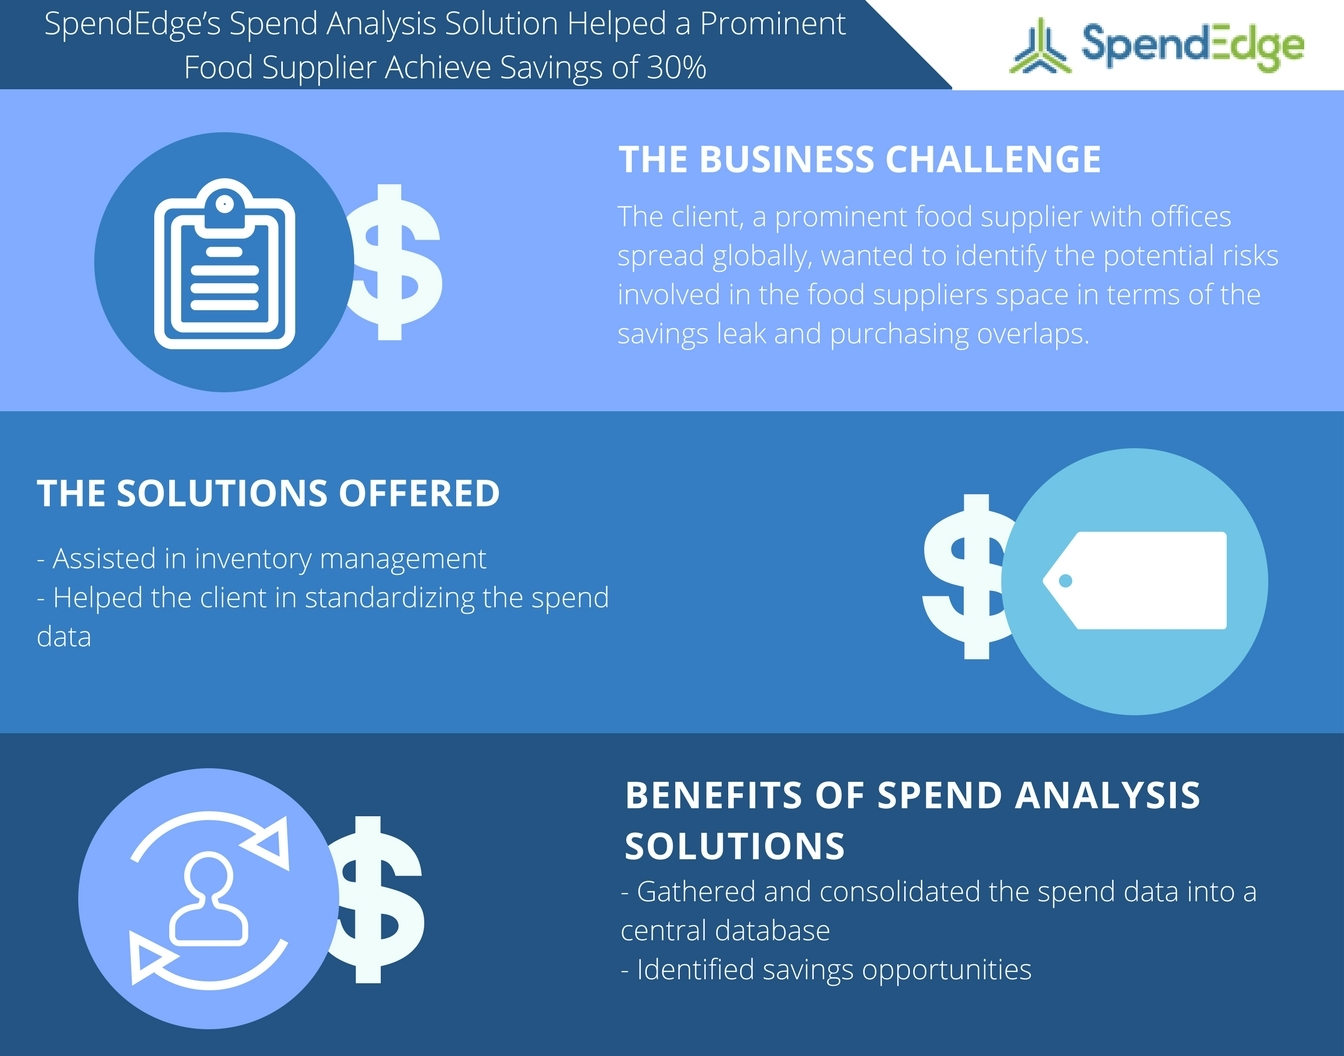 SpendEdge's Spend Analysis Solution Helps a Prominent Food Supplier